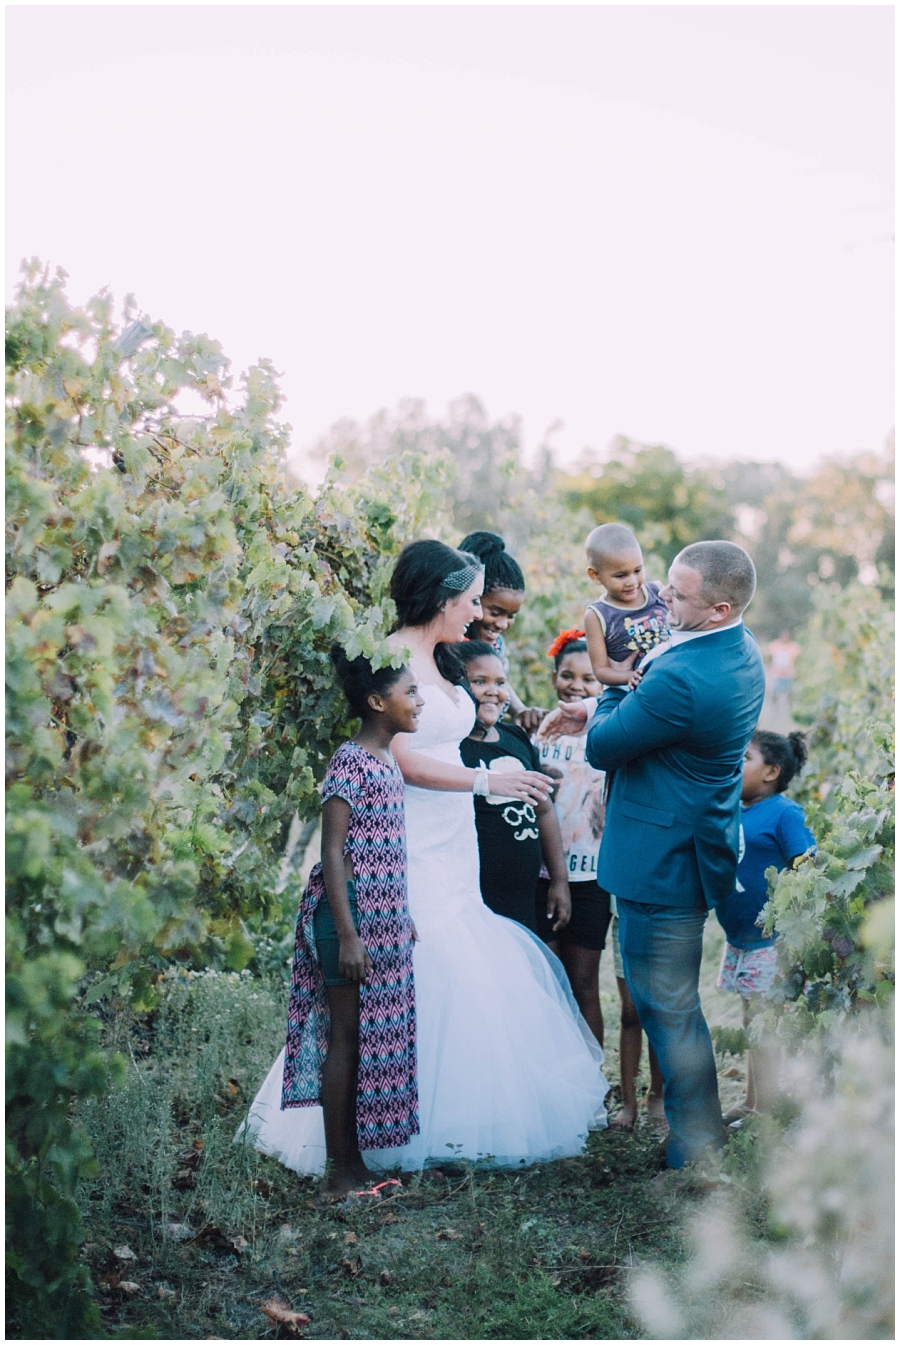 Ronel Kruger Cape Town Wedding and Lifestyle Photographer_3411.jpg